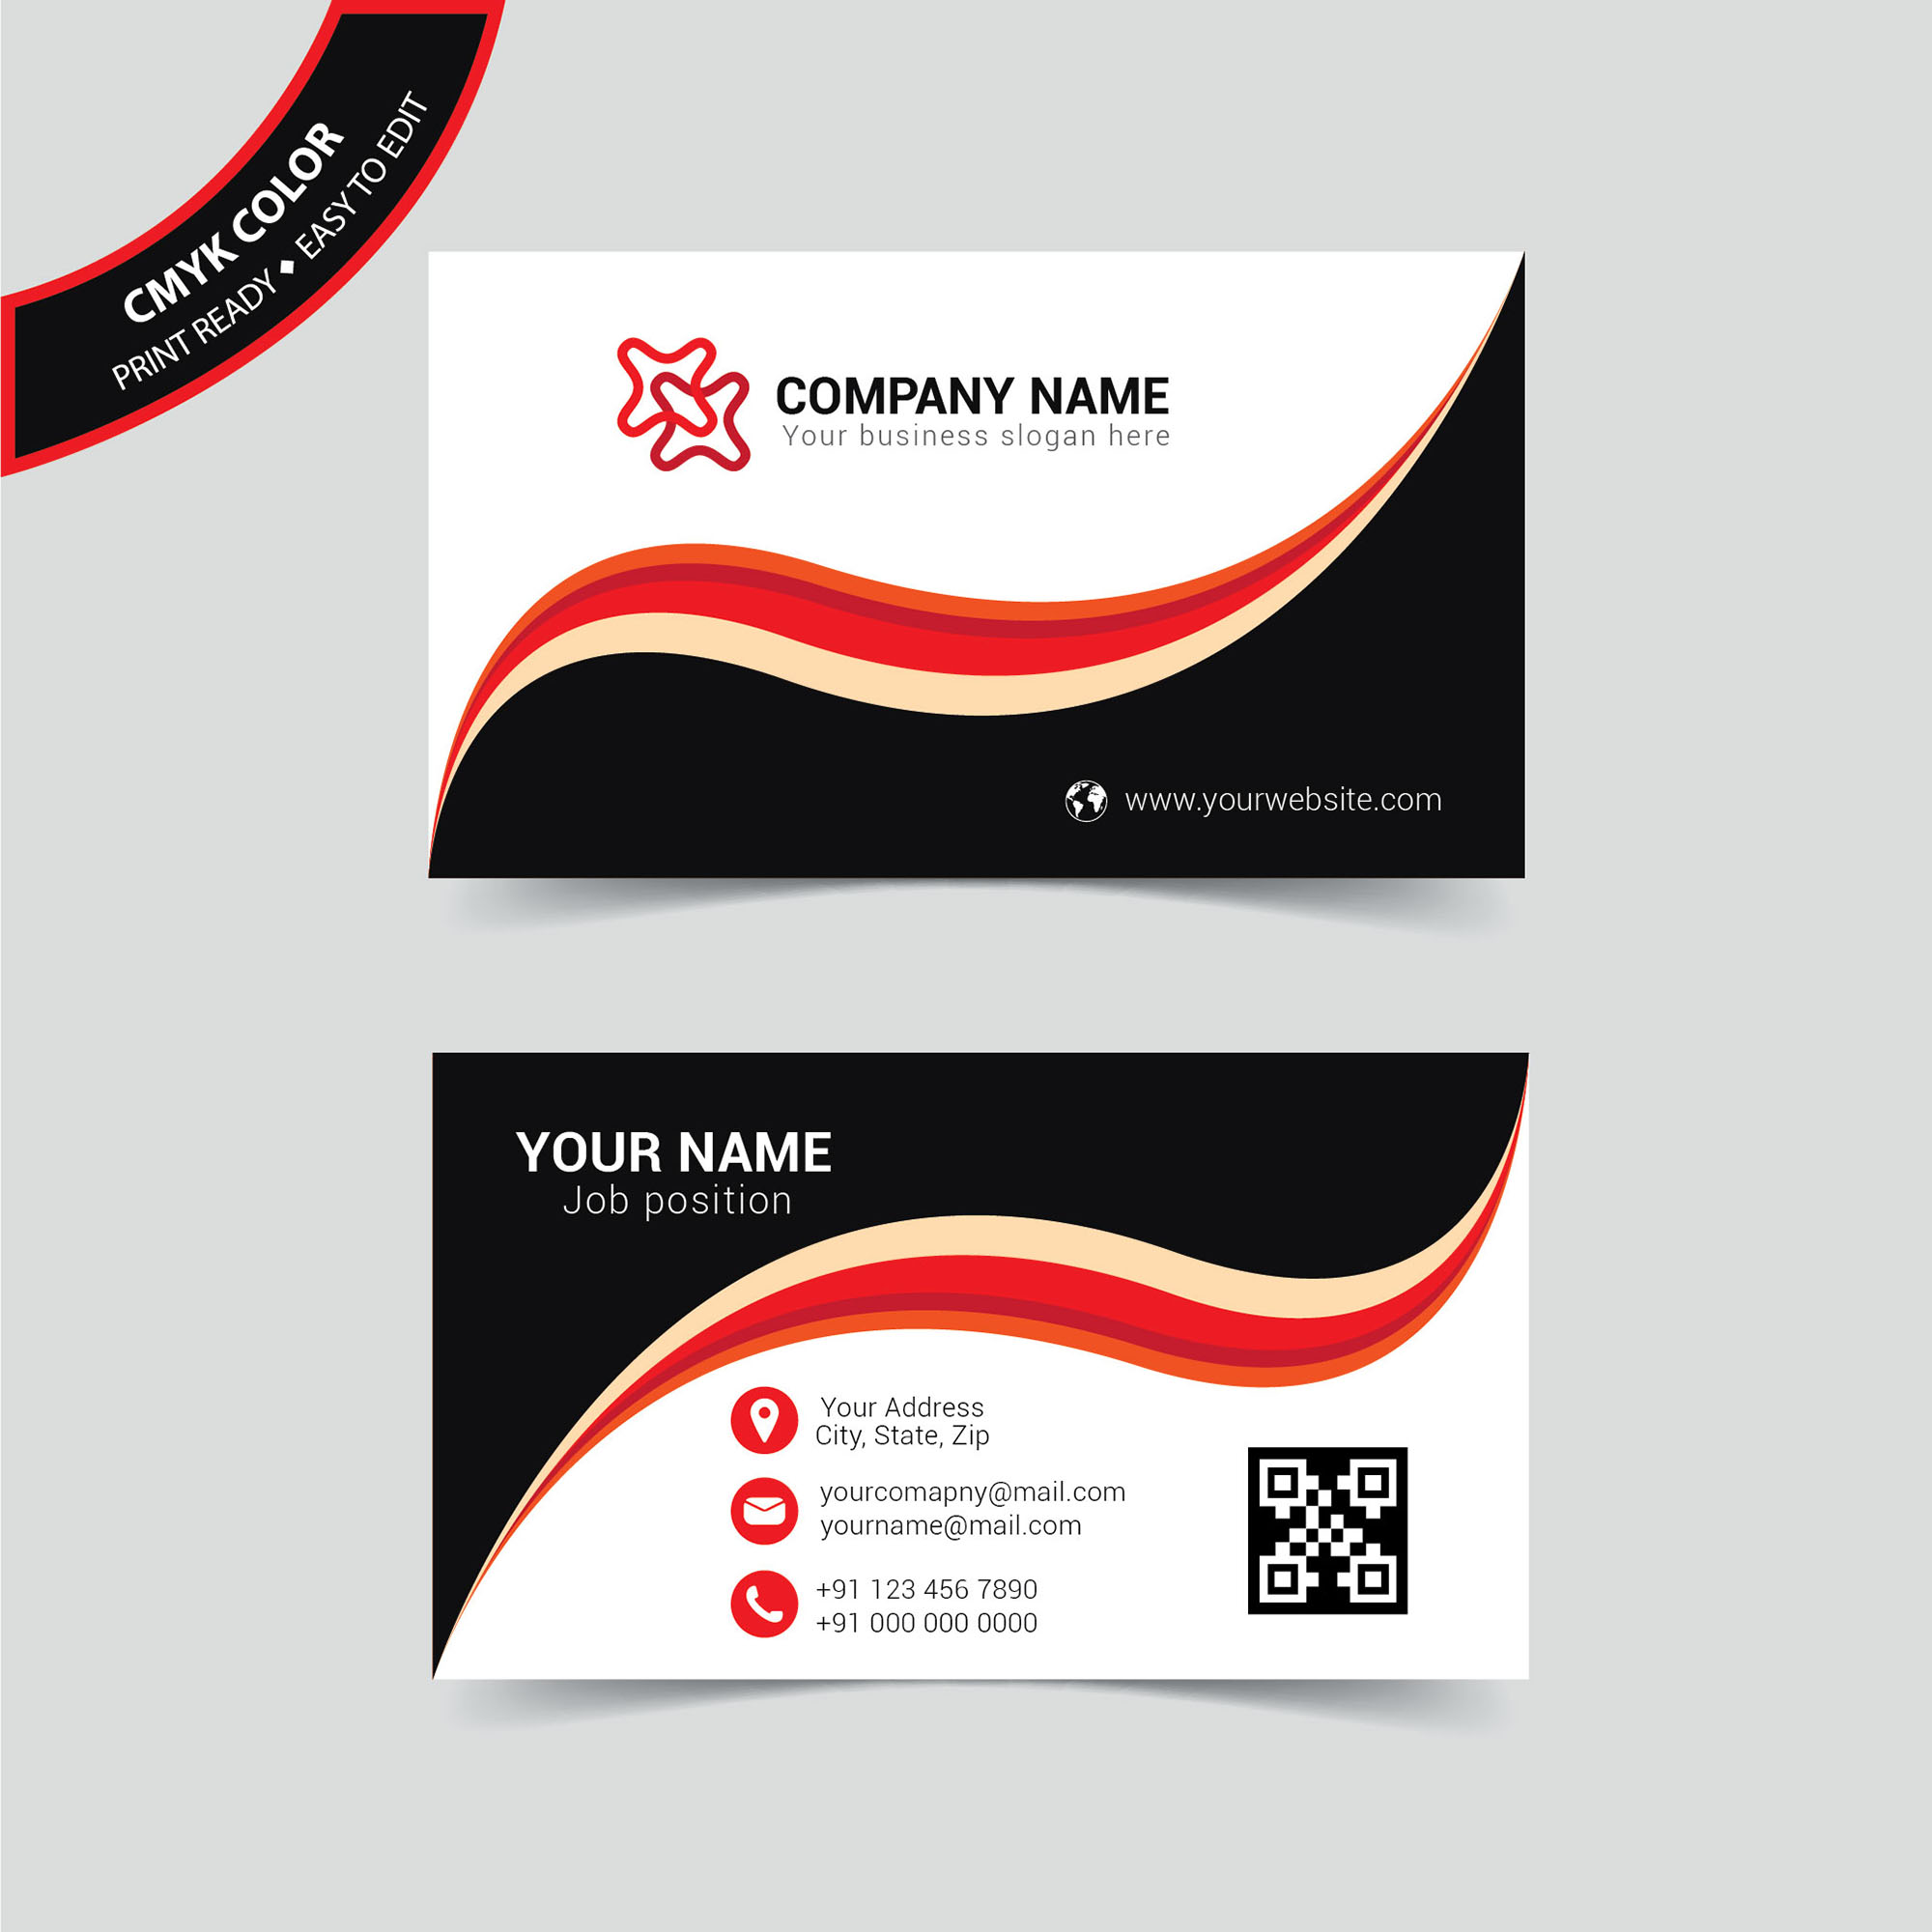 Corporate name card design free download wisxi business card business cards business card design business card template design templates accmission